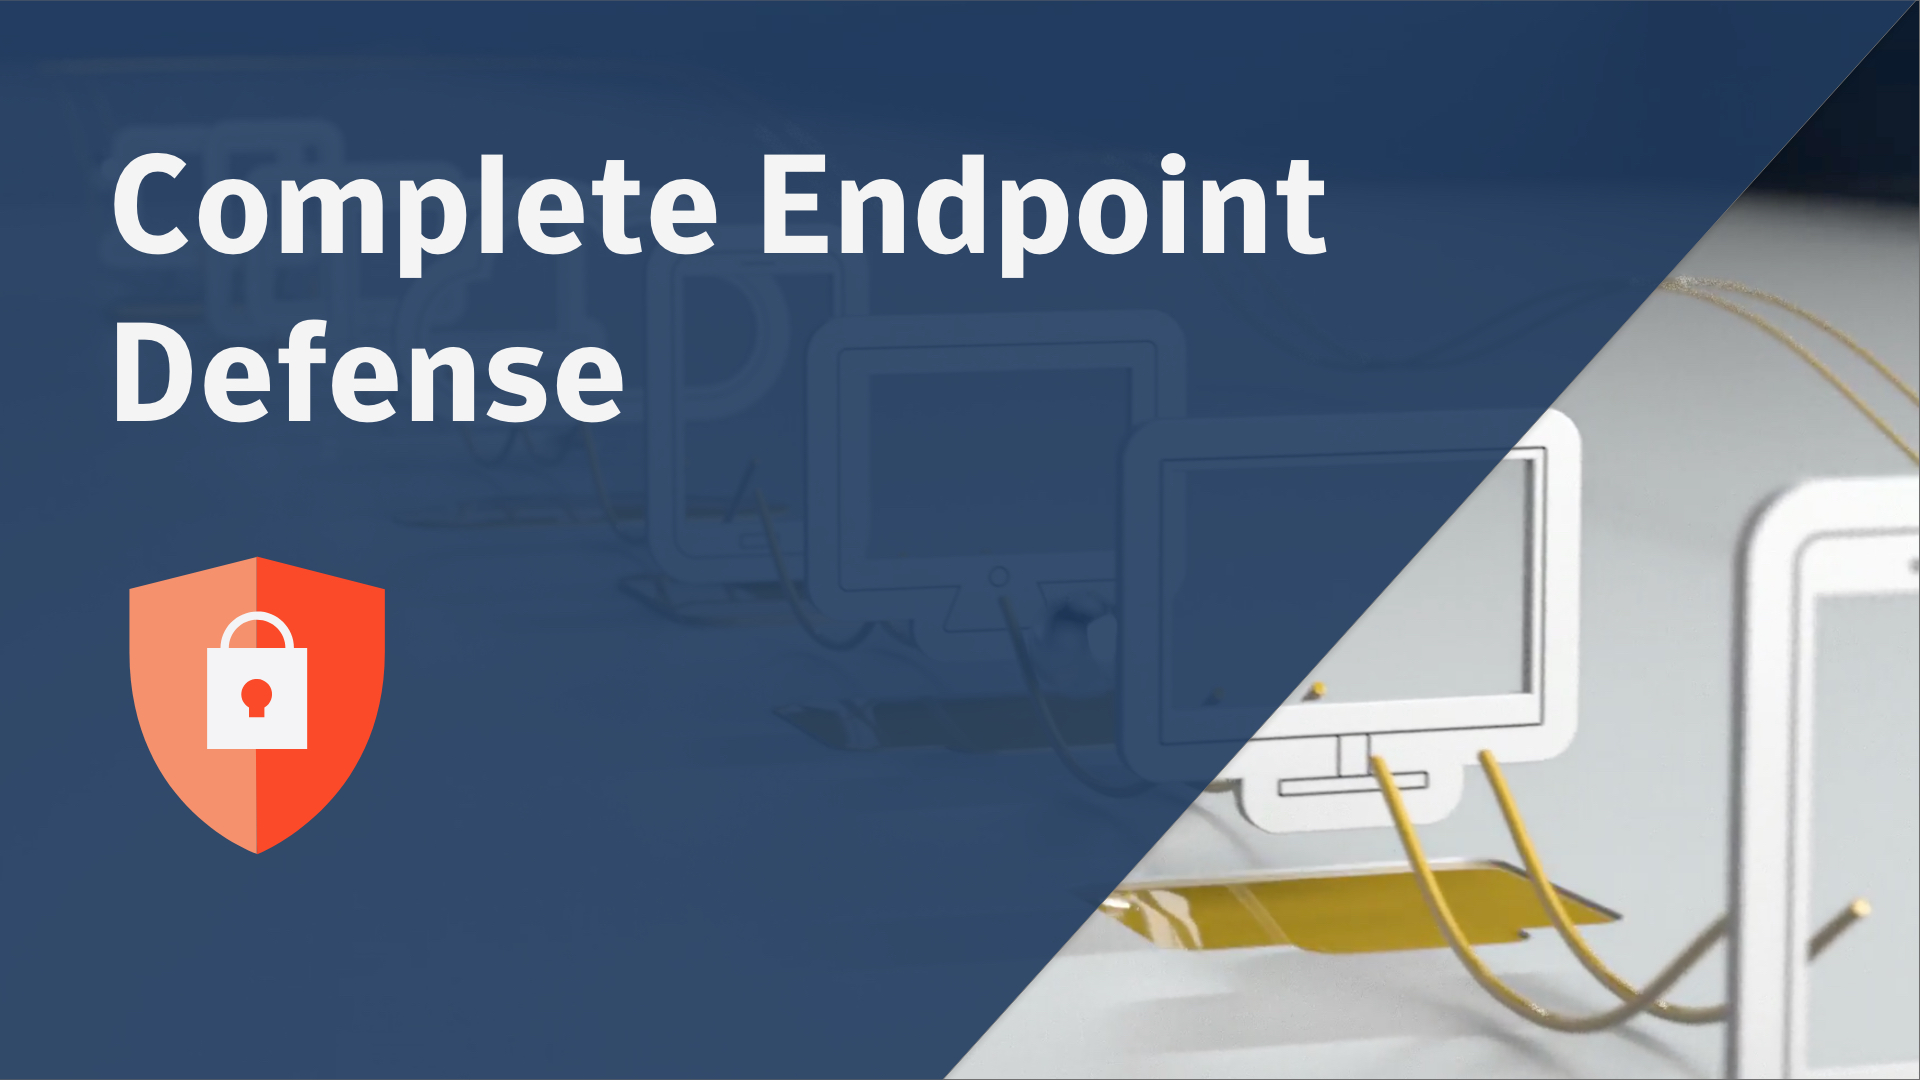 Endpoint Security Solutions | Symantec